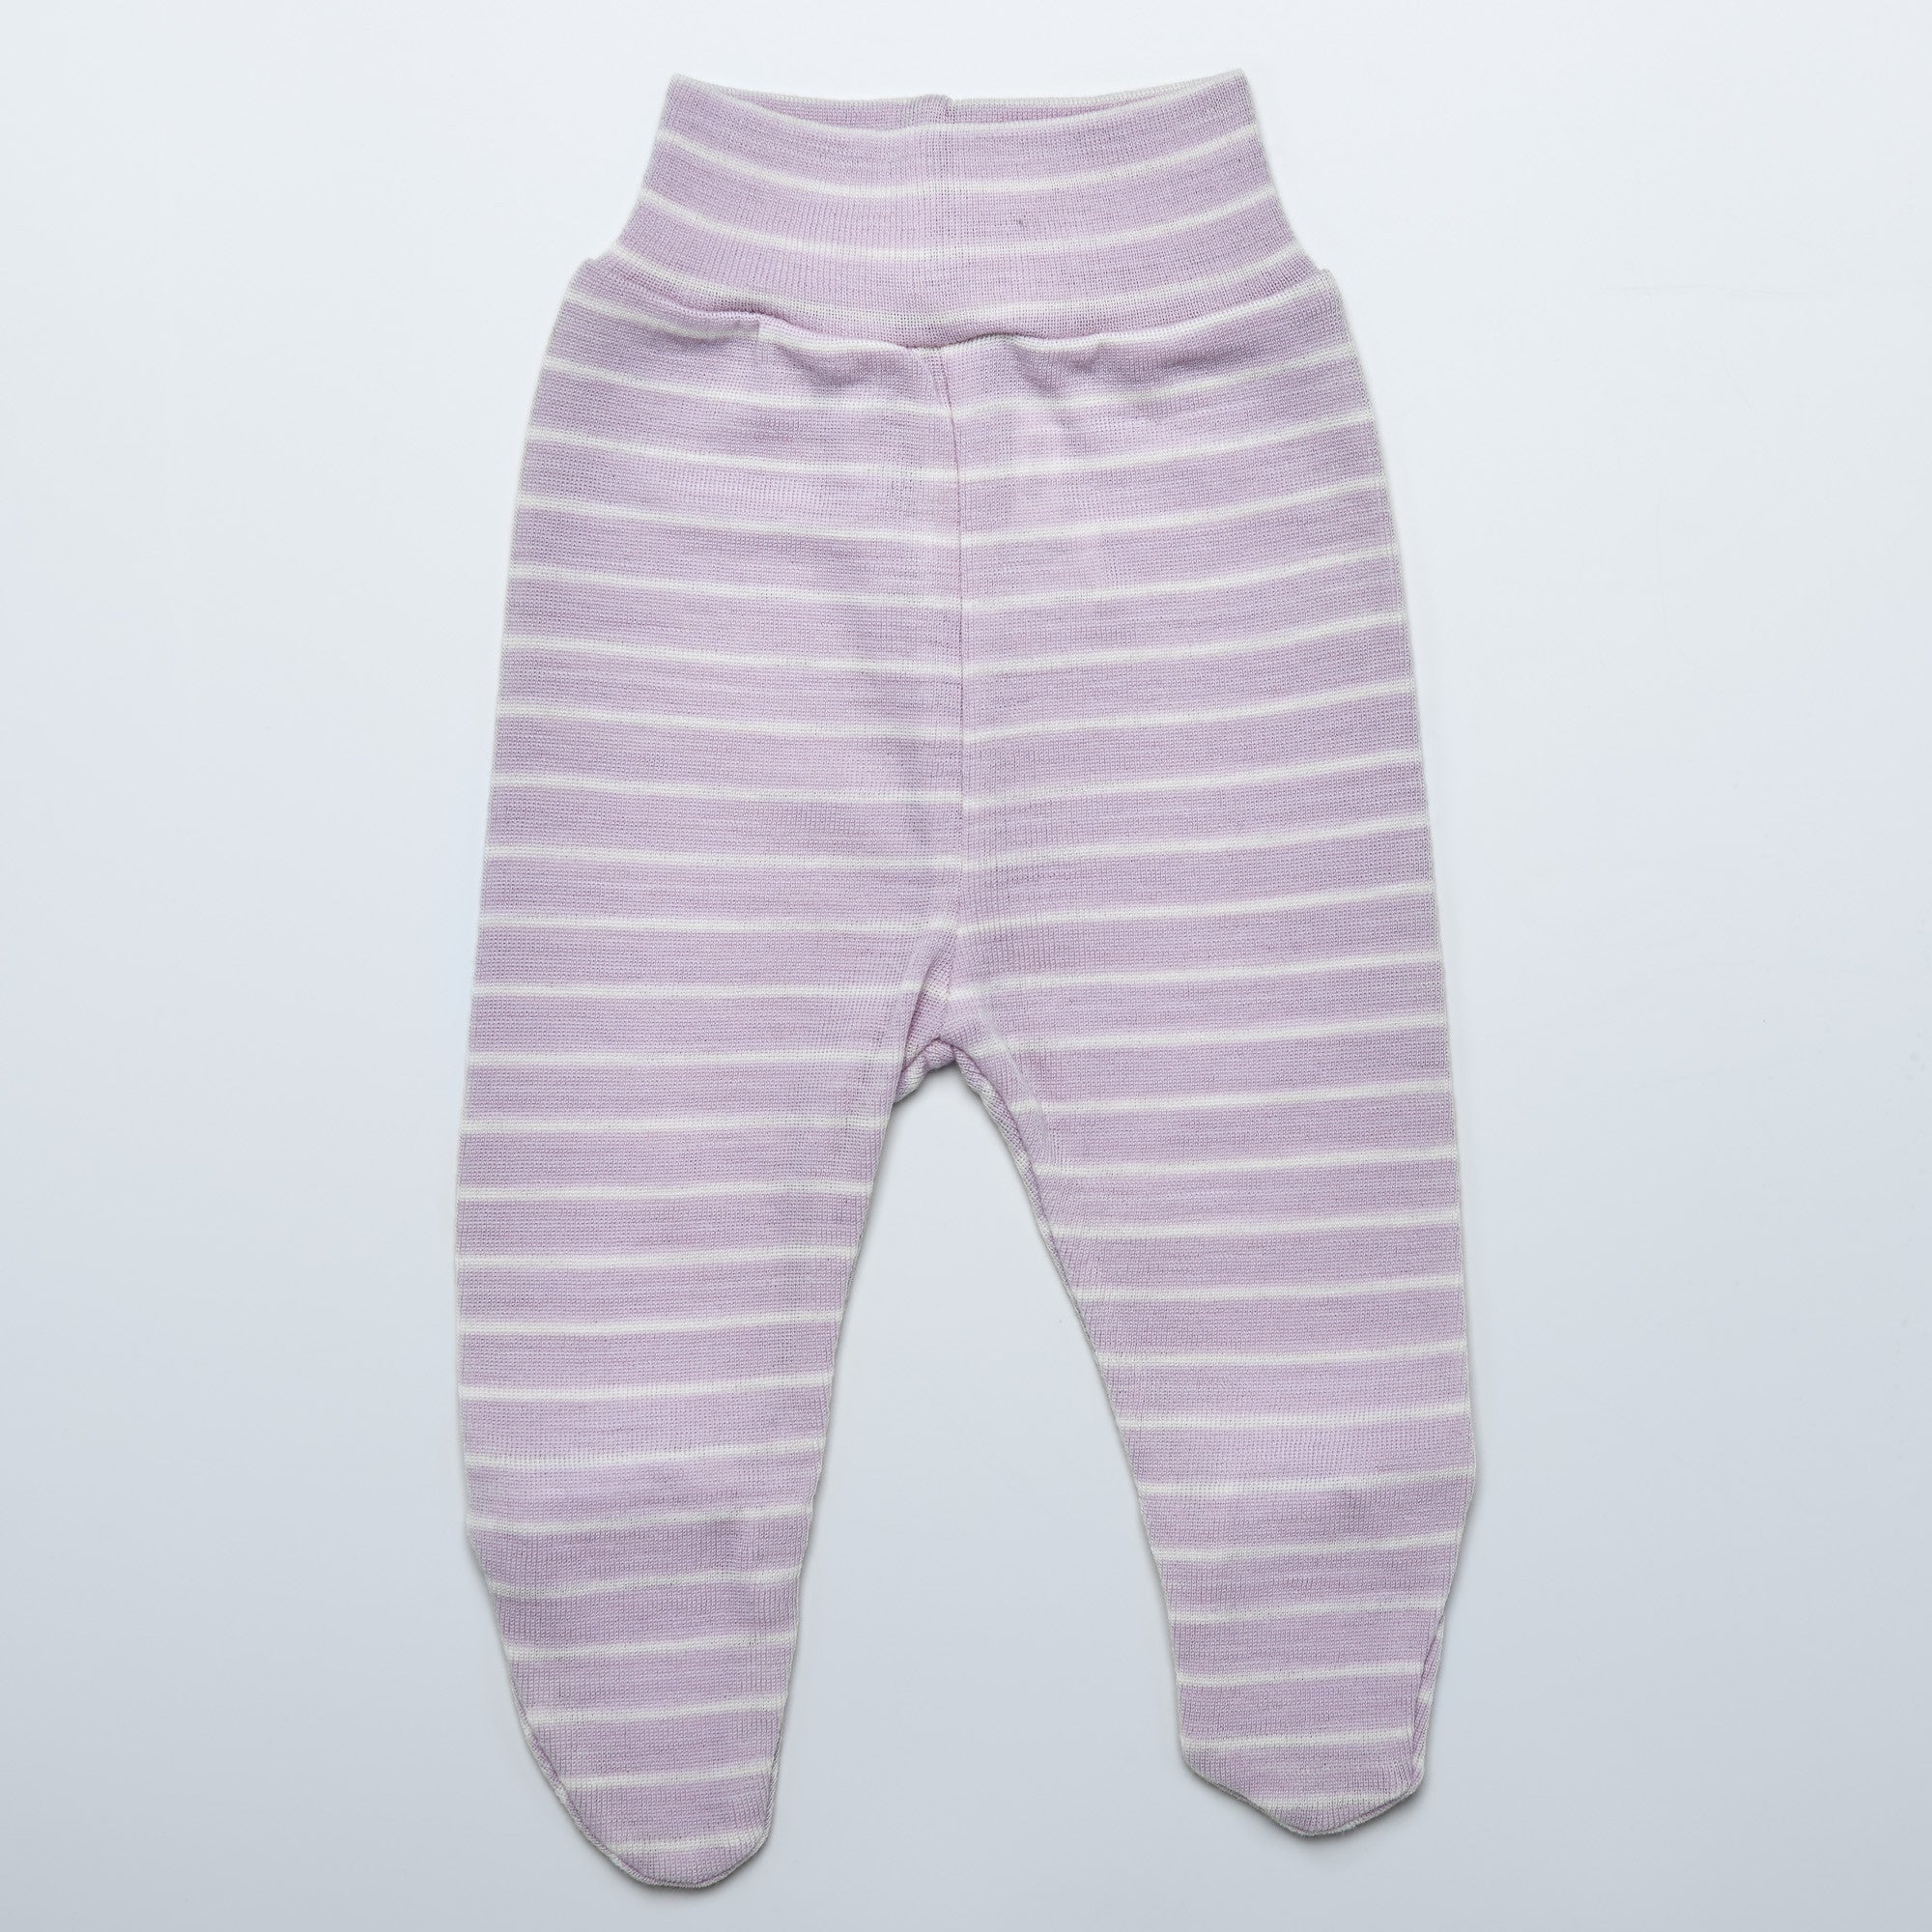 Violet Striped Merino Pants with Feet